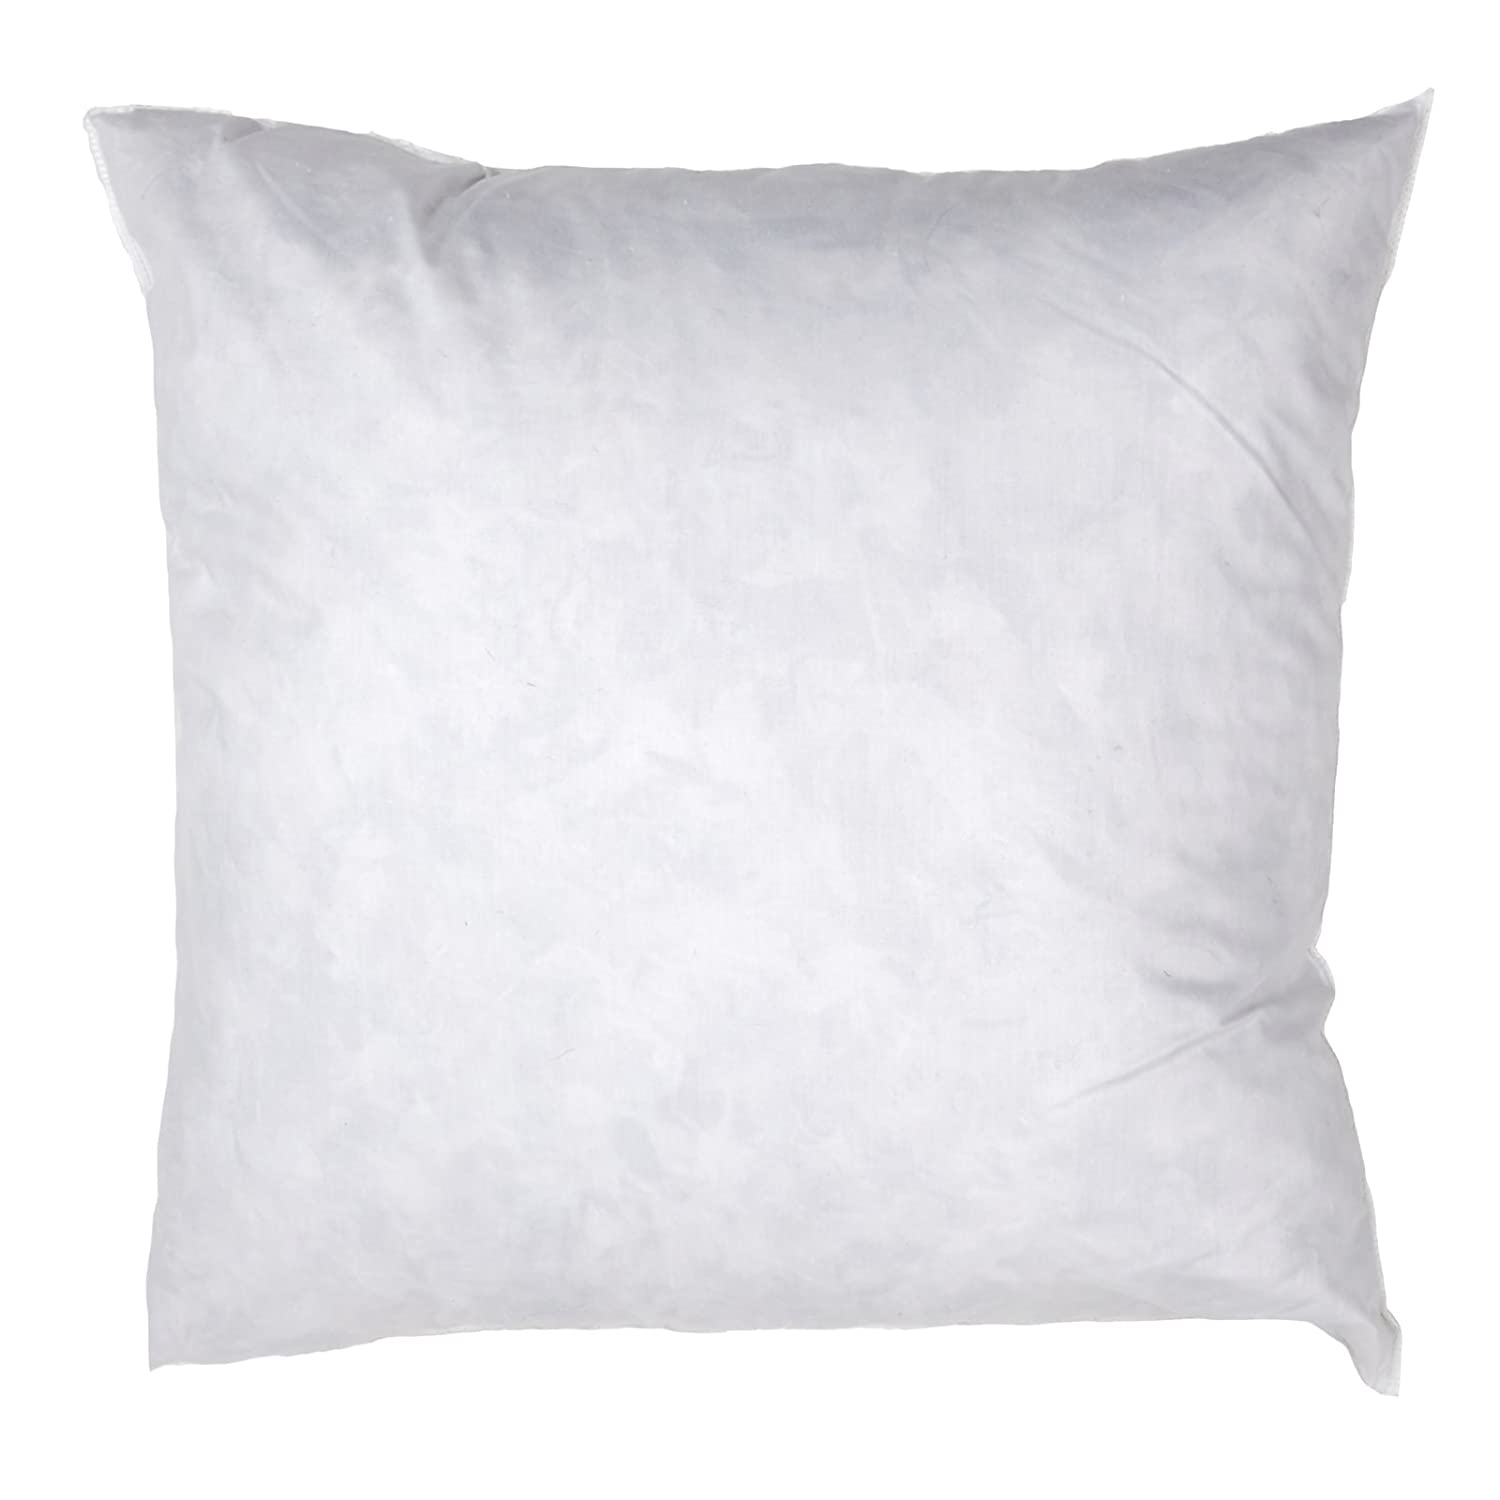 Famous Maker 24in x 24in Feather/Down Pillow Form White, Fabric.com PIL-011